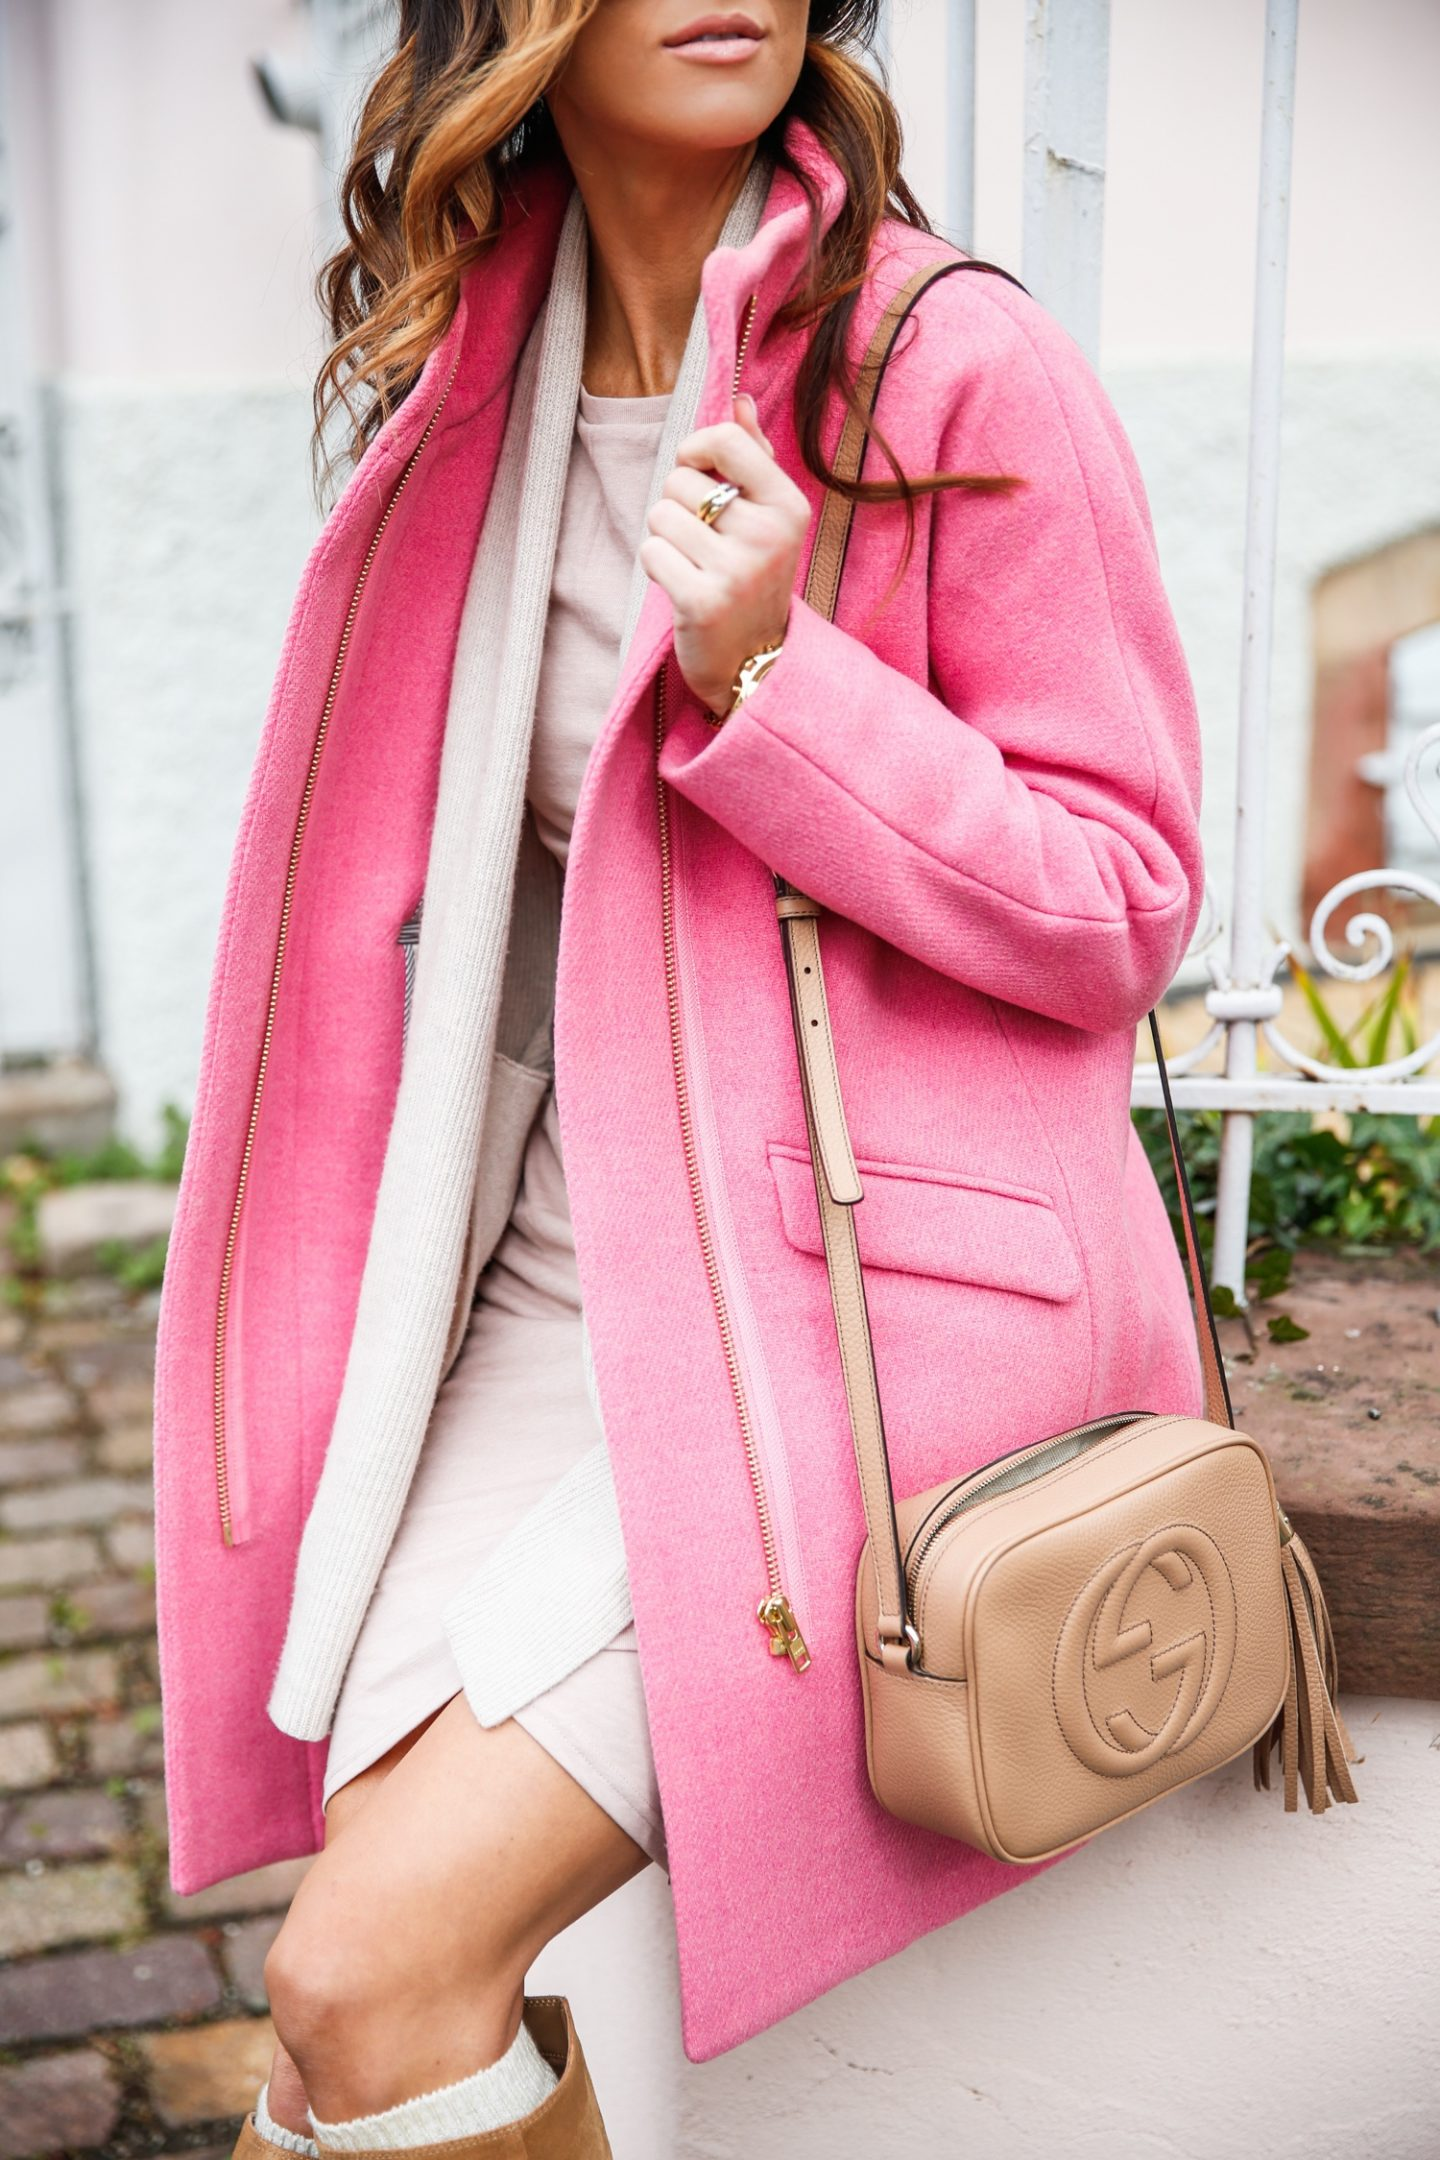 Best pink coat outfits for winter